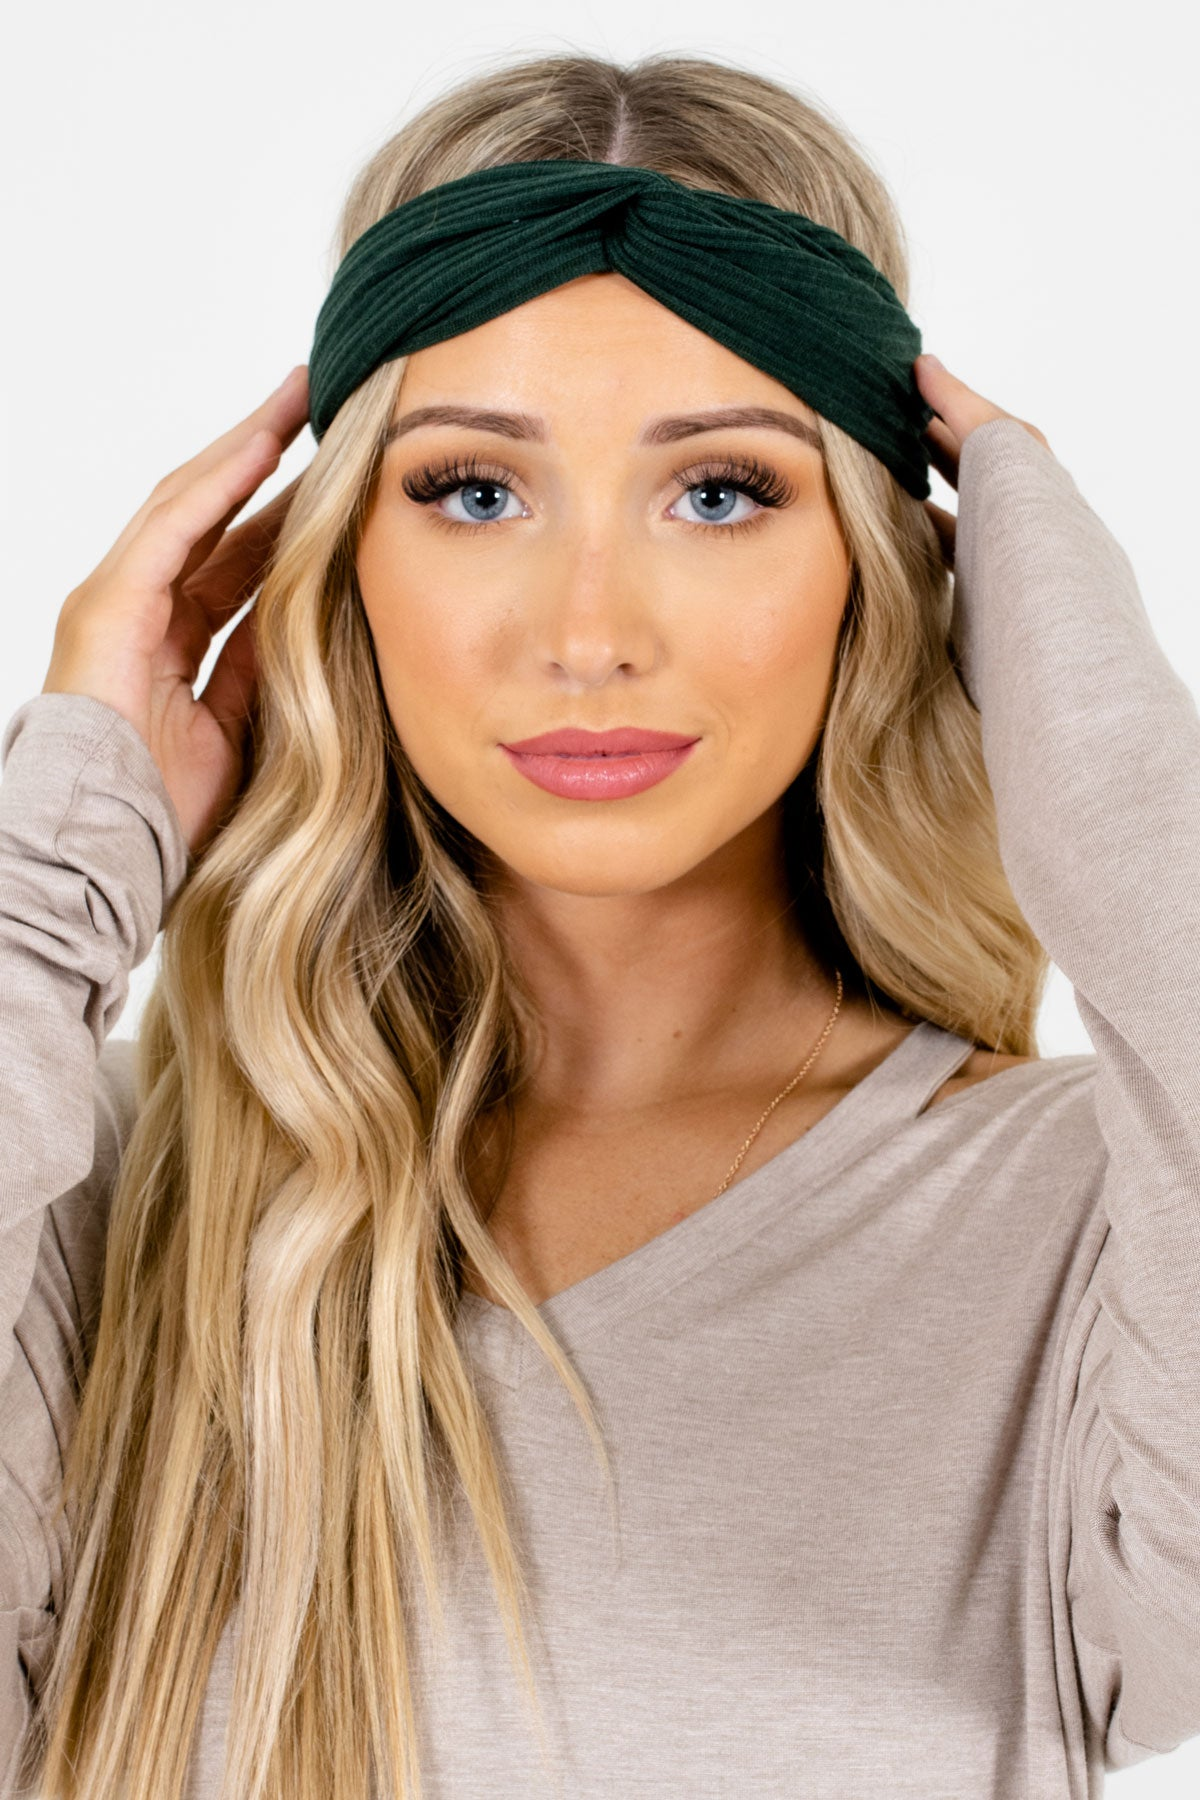 Green Ribbed Material Boutique Headbands for Women